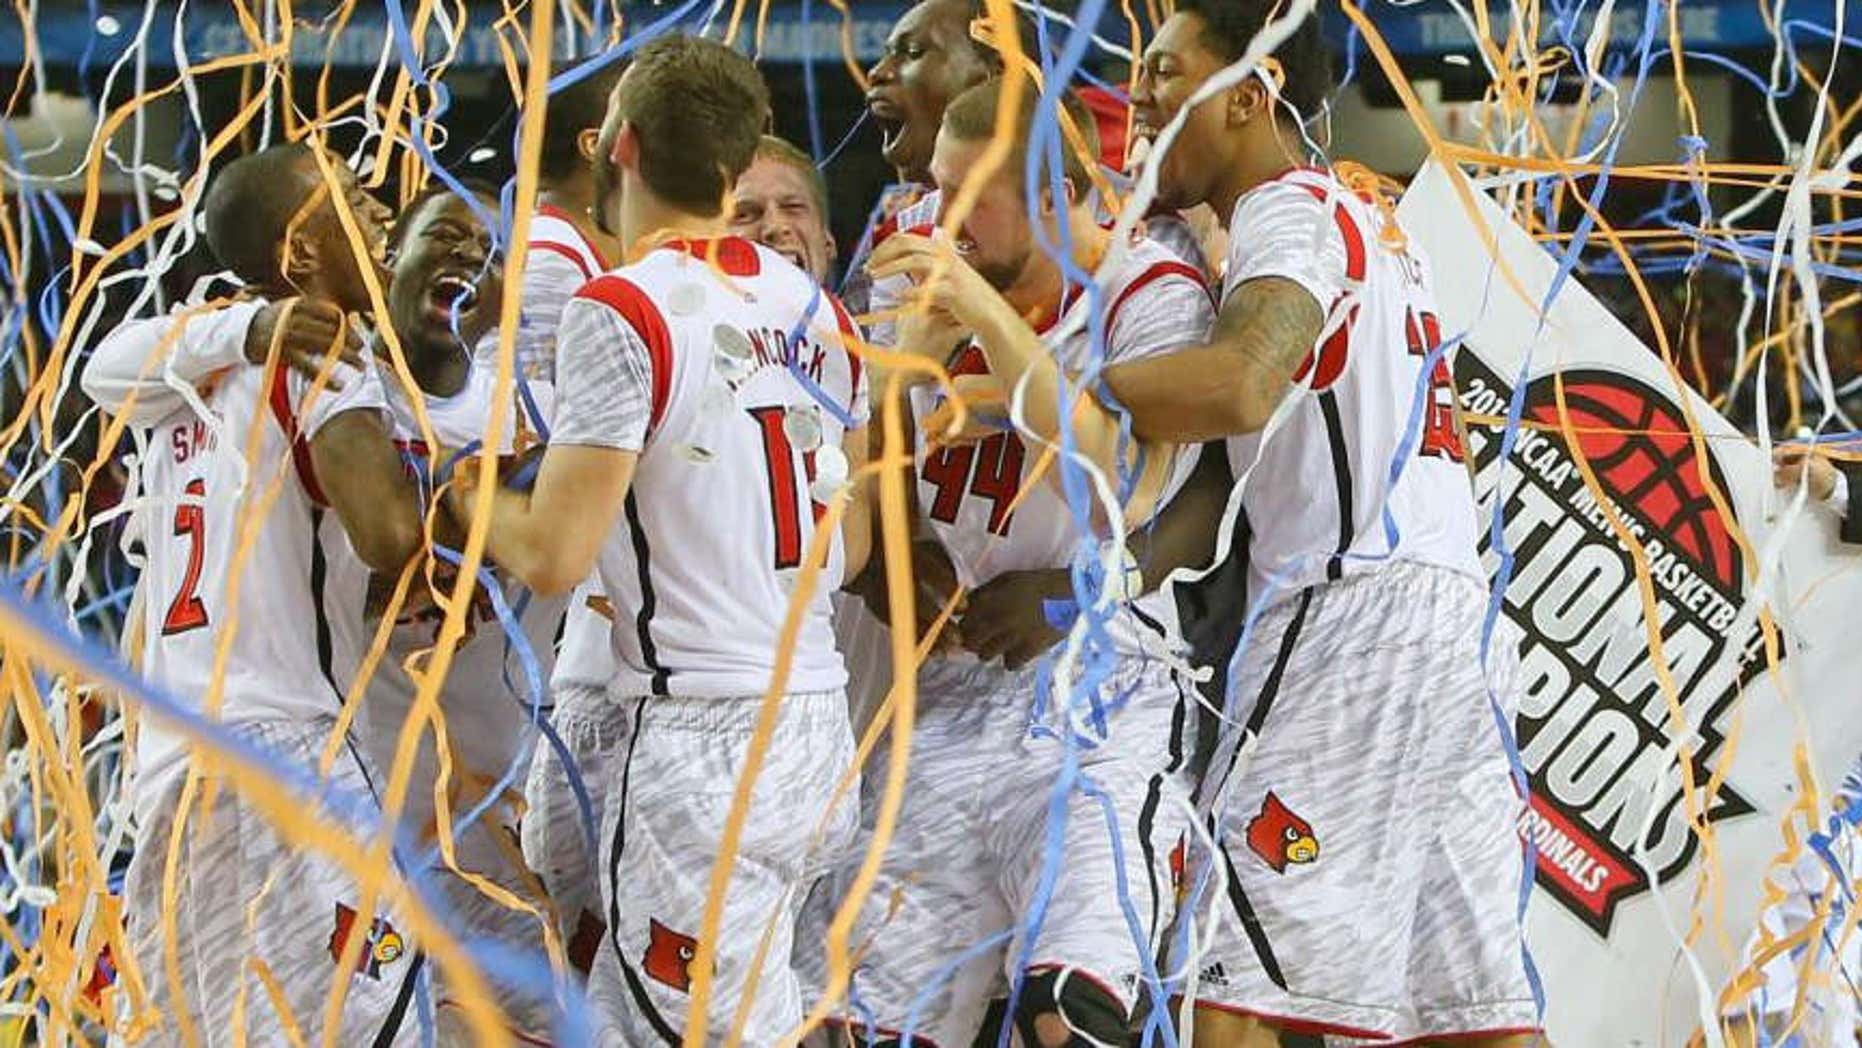 Louisville celebrates defeating Michigan to win the NCAA Division I National Championship on Monday, April 8, 2013, in Atlanta. Louisville beat Michigan 82-76.